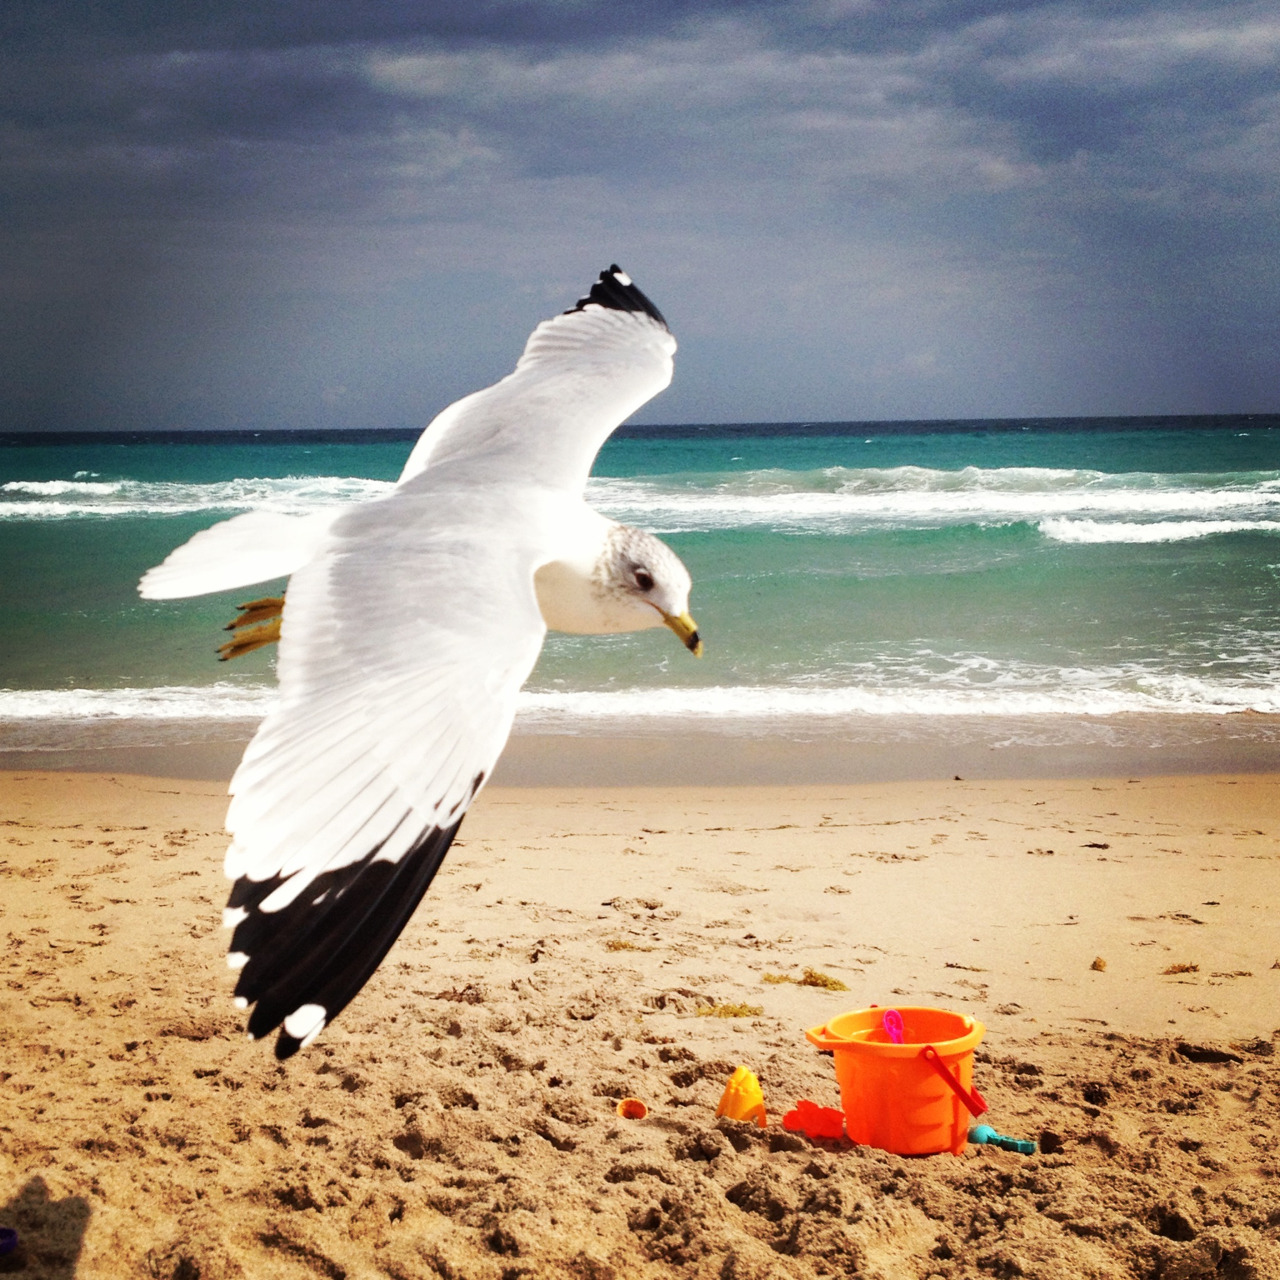 Took this today in Delray Beach. this seagull didn't leave my dude for 3 hours!